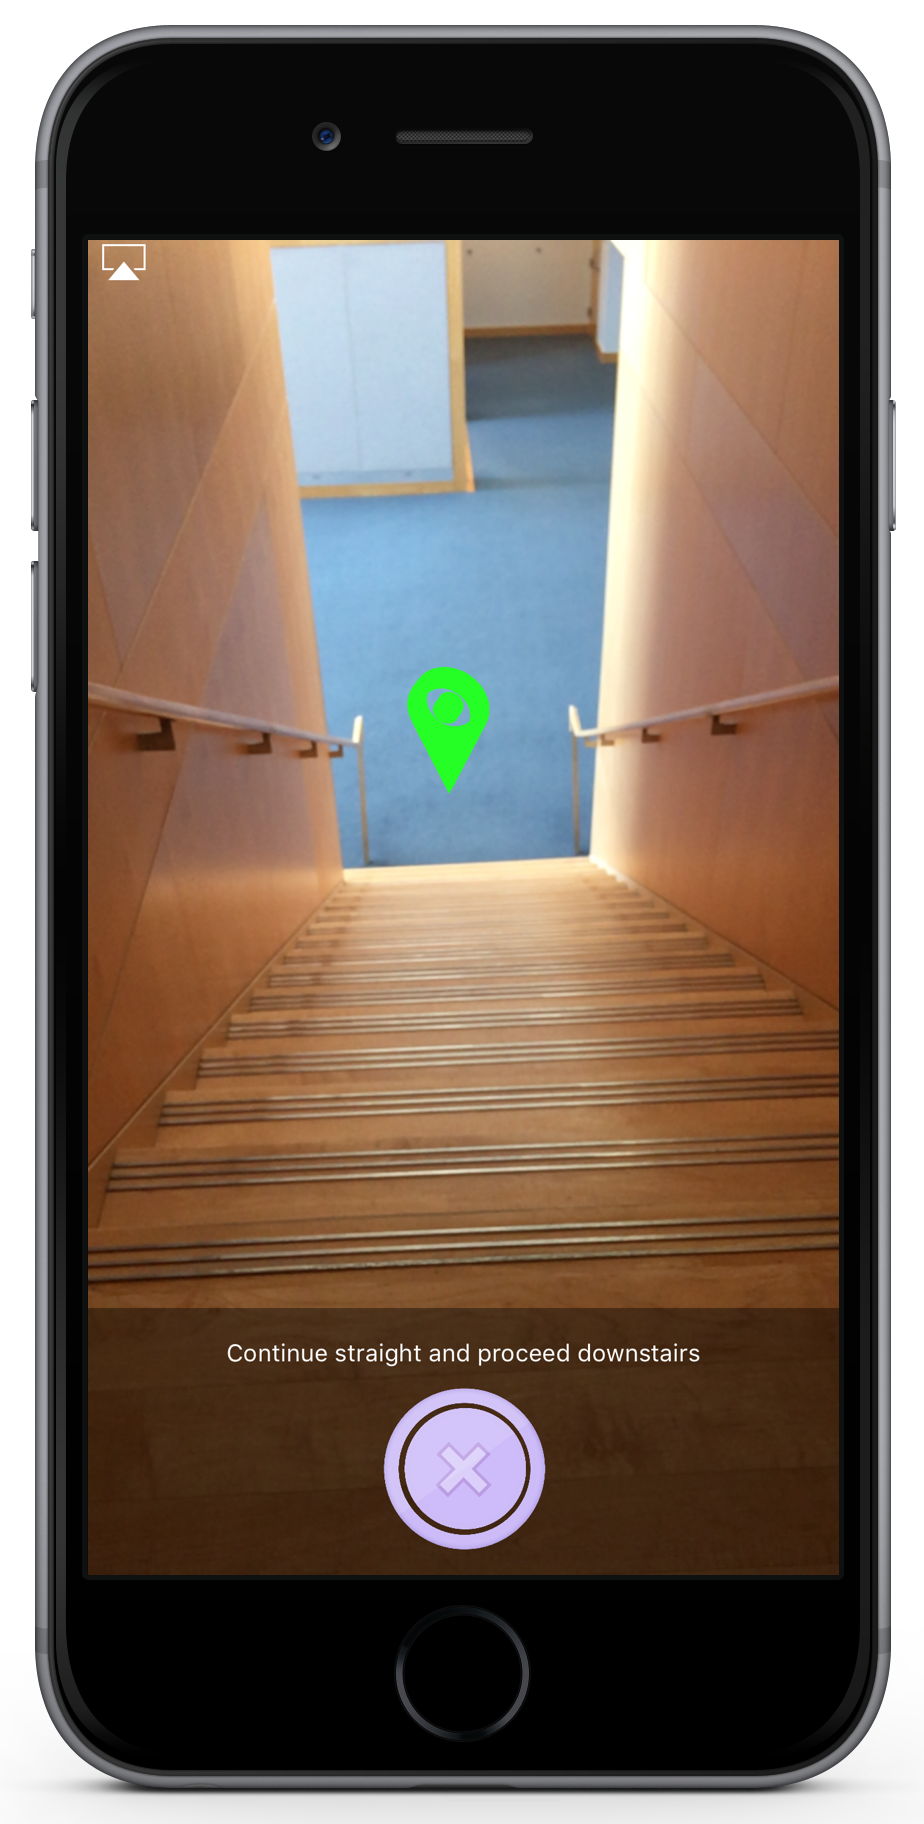 an image of the app in navigation mode.  The image shows a waypoint overlaid on the image at the bottom of a staircase.  The text says 'Continue straight and proceed downstairs.'